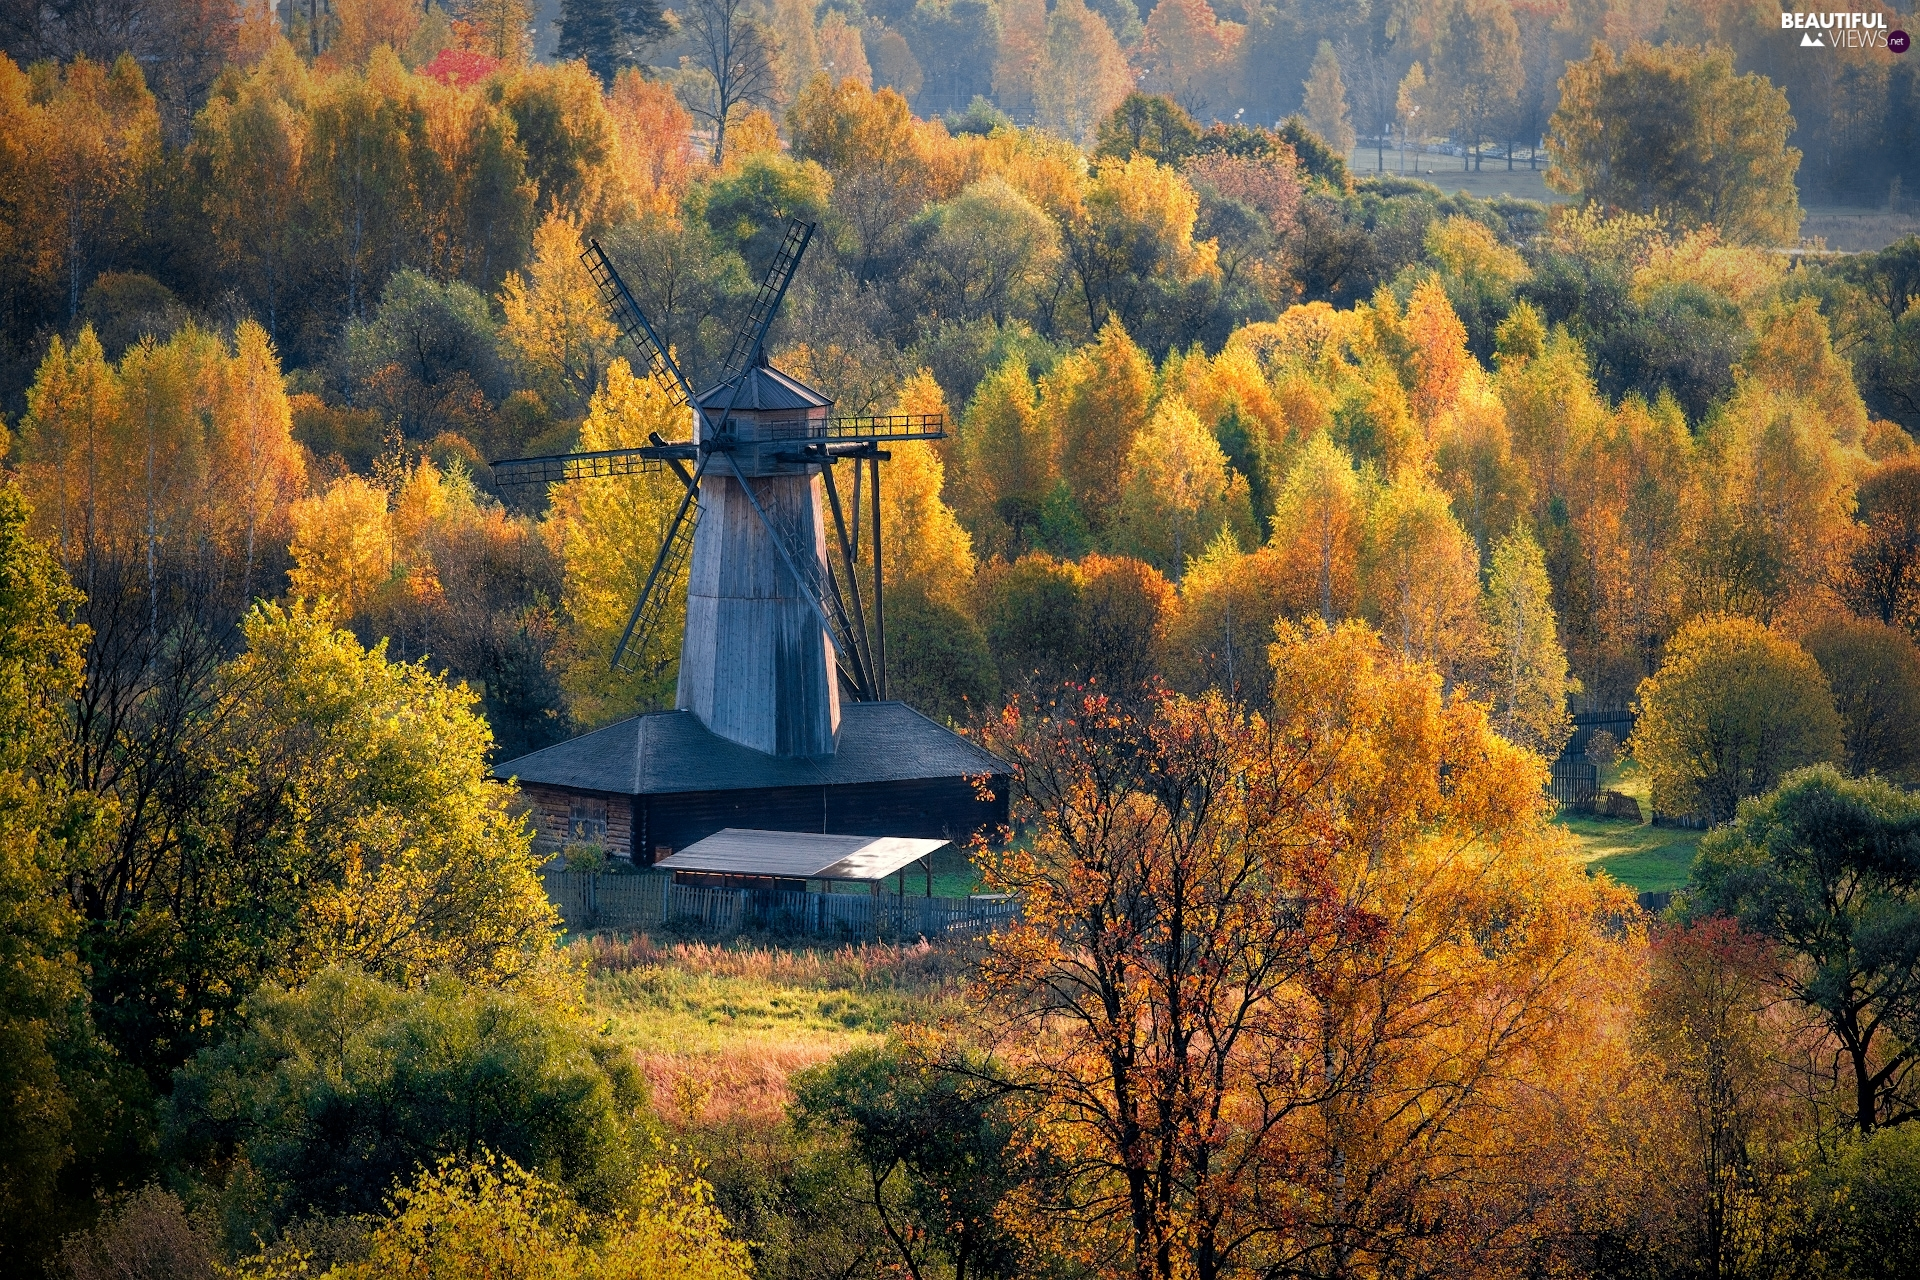 forest, Windmill, trees, viewes, autumn